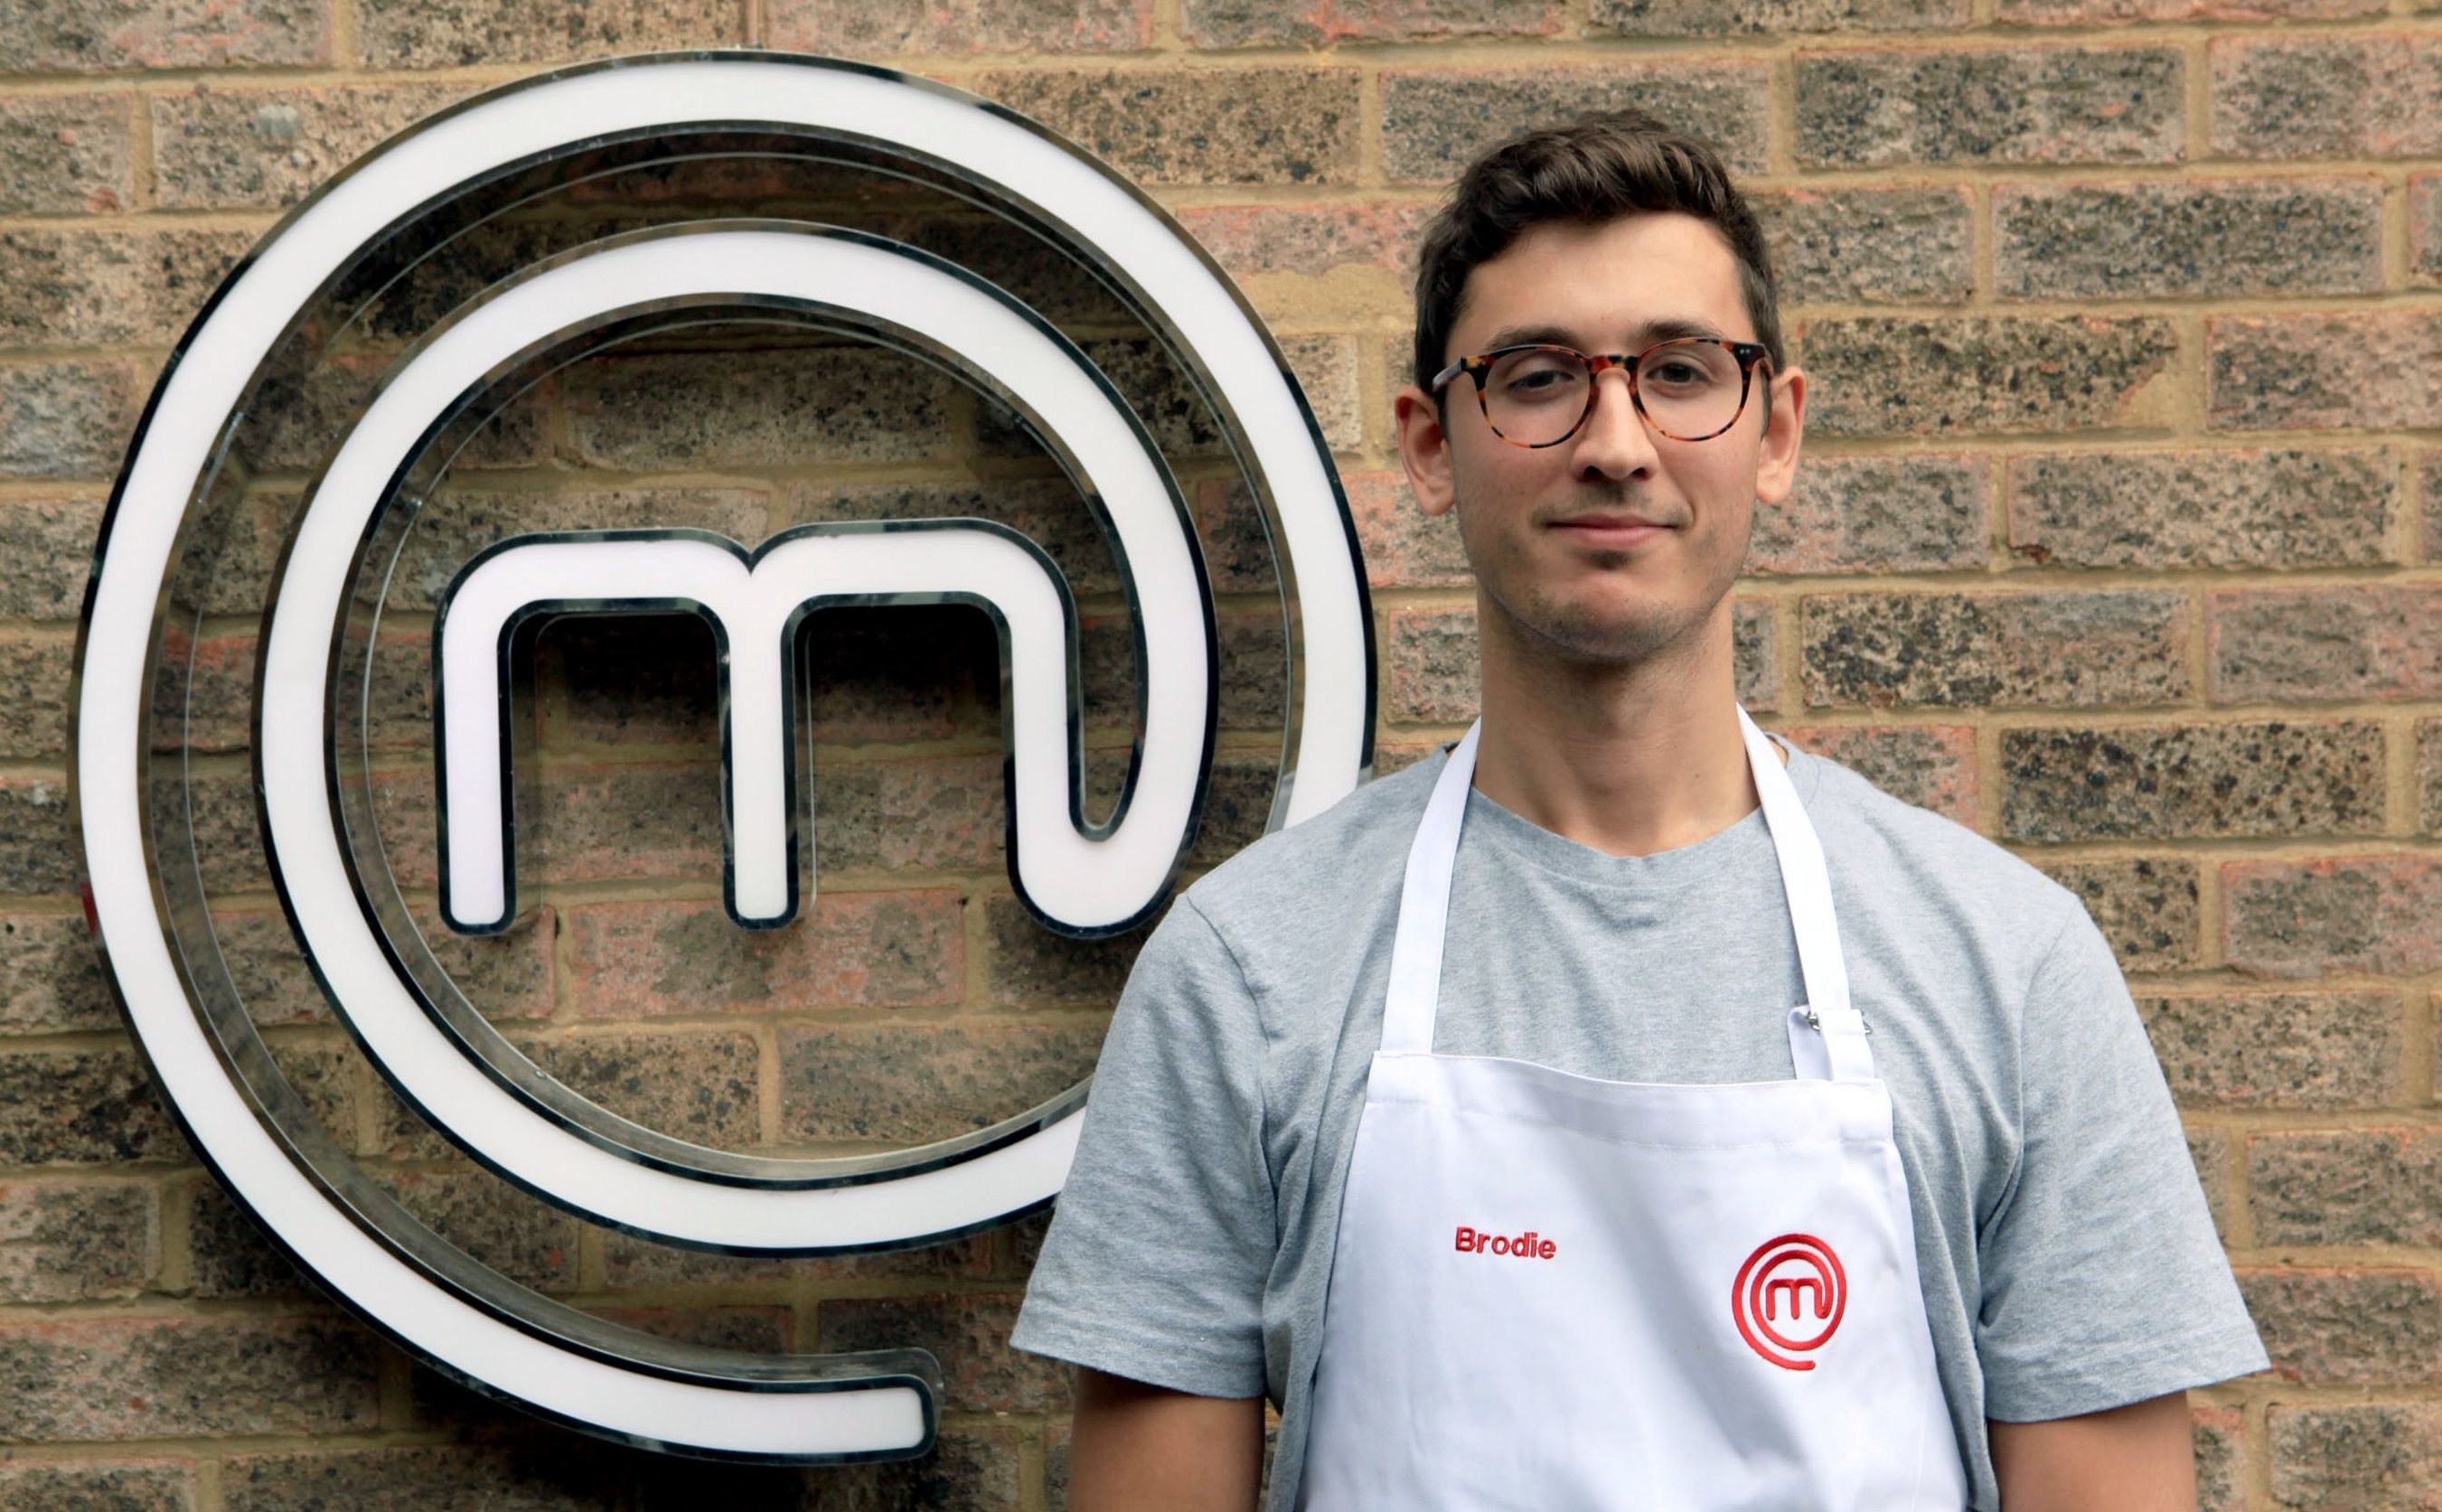 Brodie Williams, from Cupar, is appearing as a contestant on MasterChef